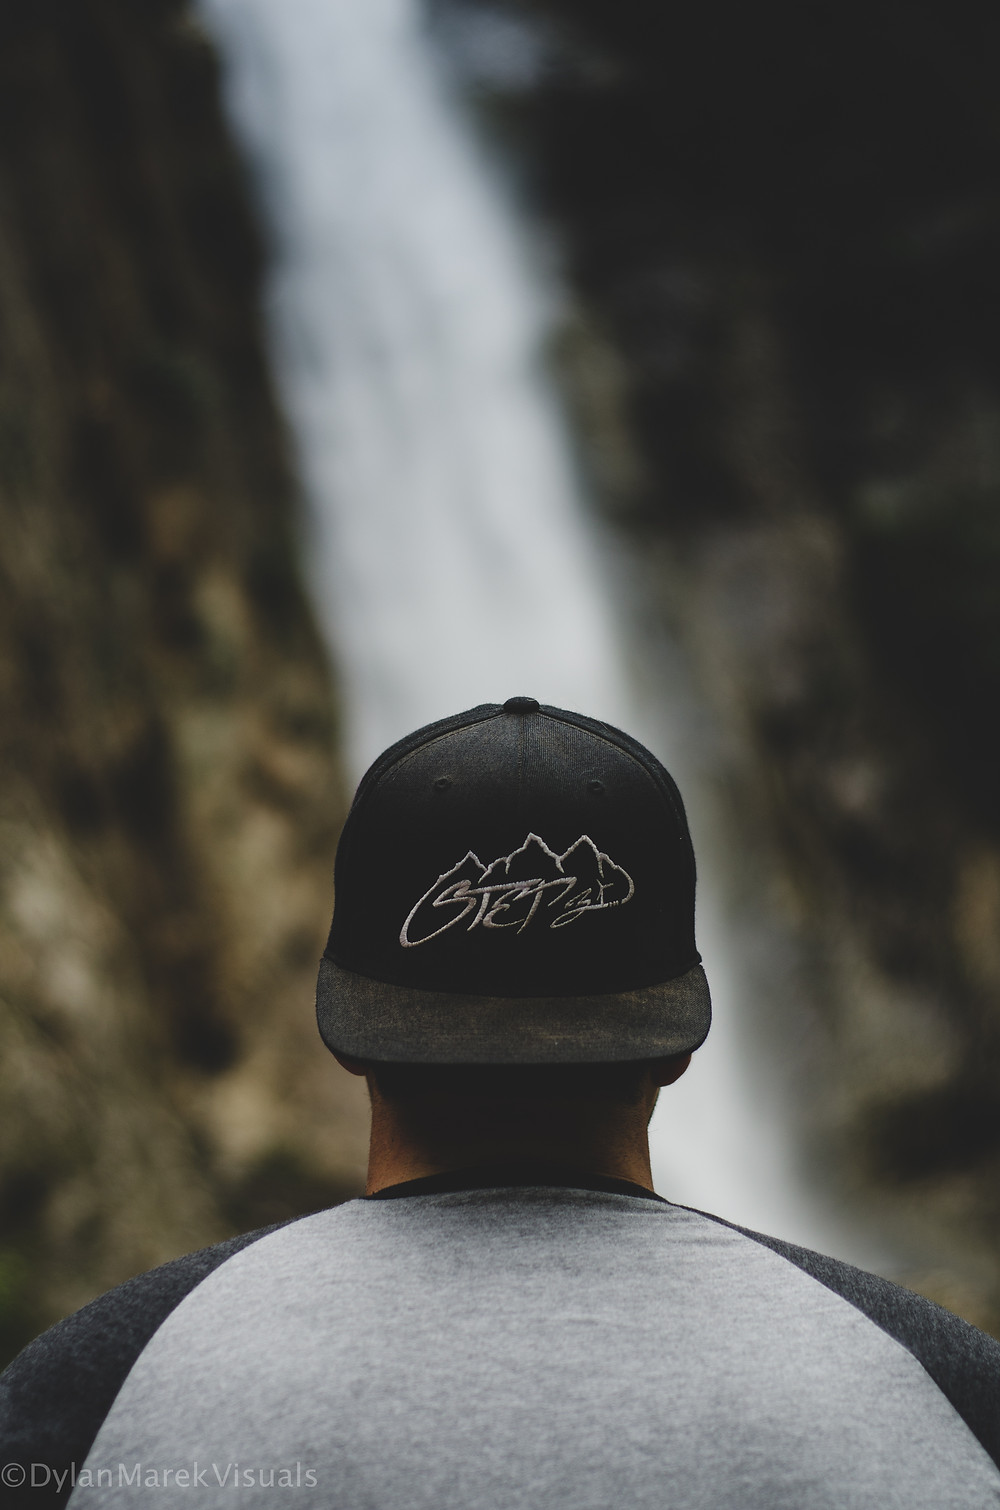 Man looking at a water fall in a backwards hat